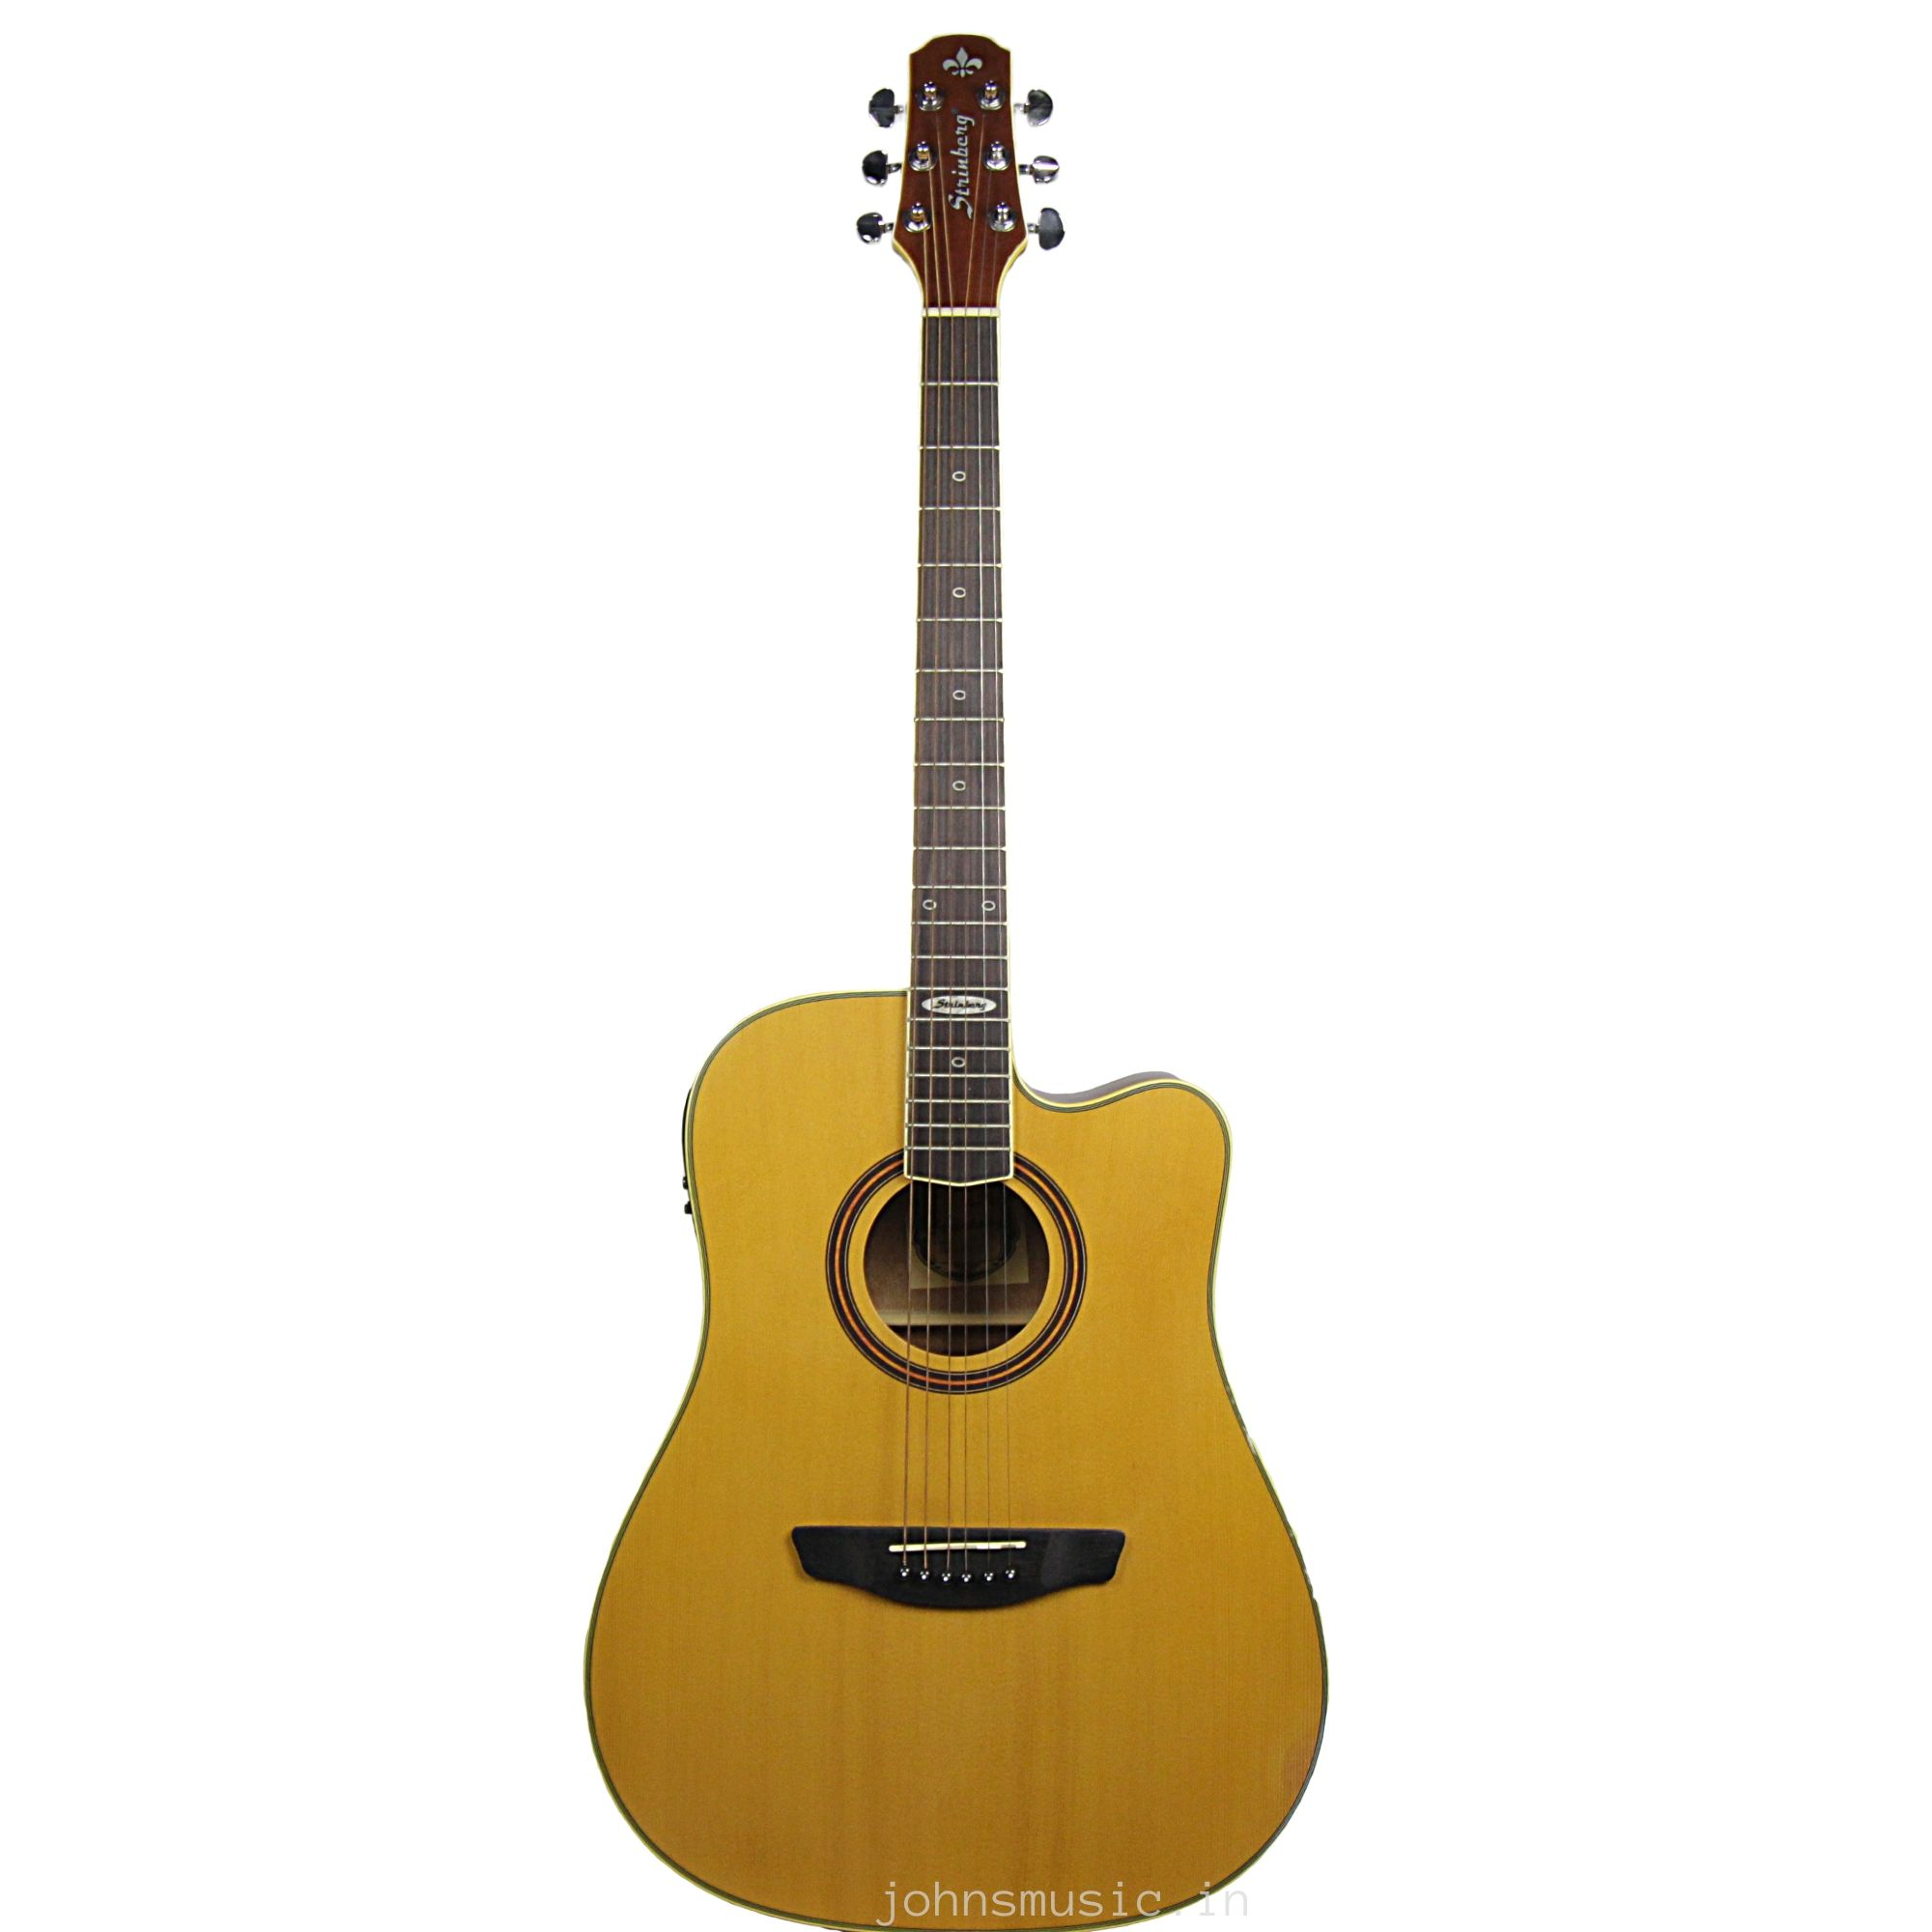 Buy stringberg guitar online in India